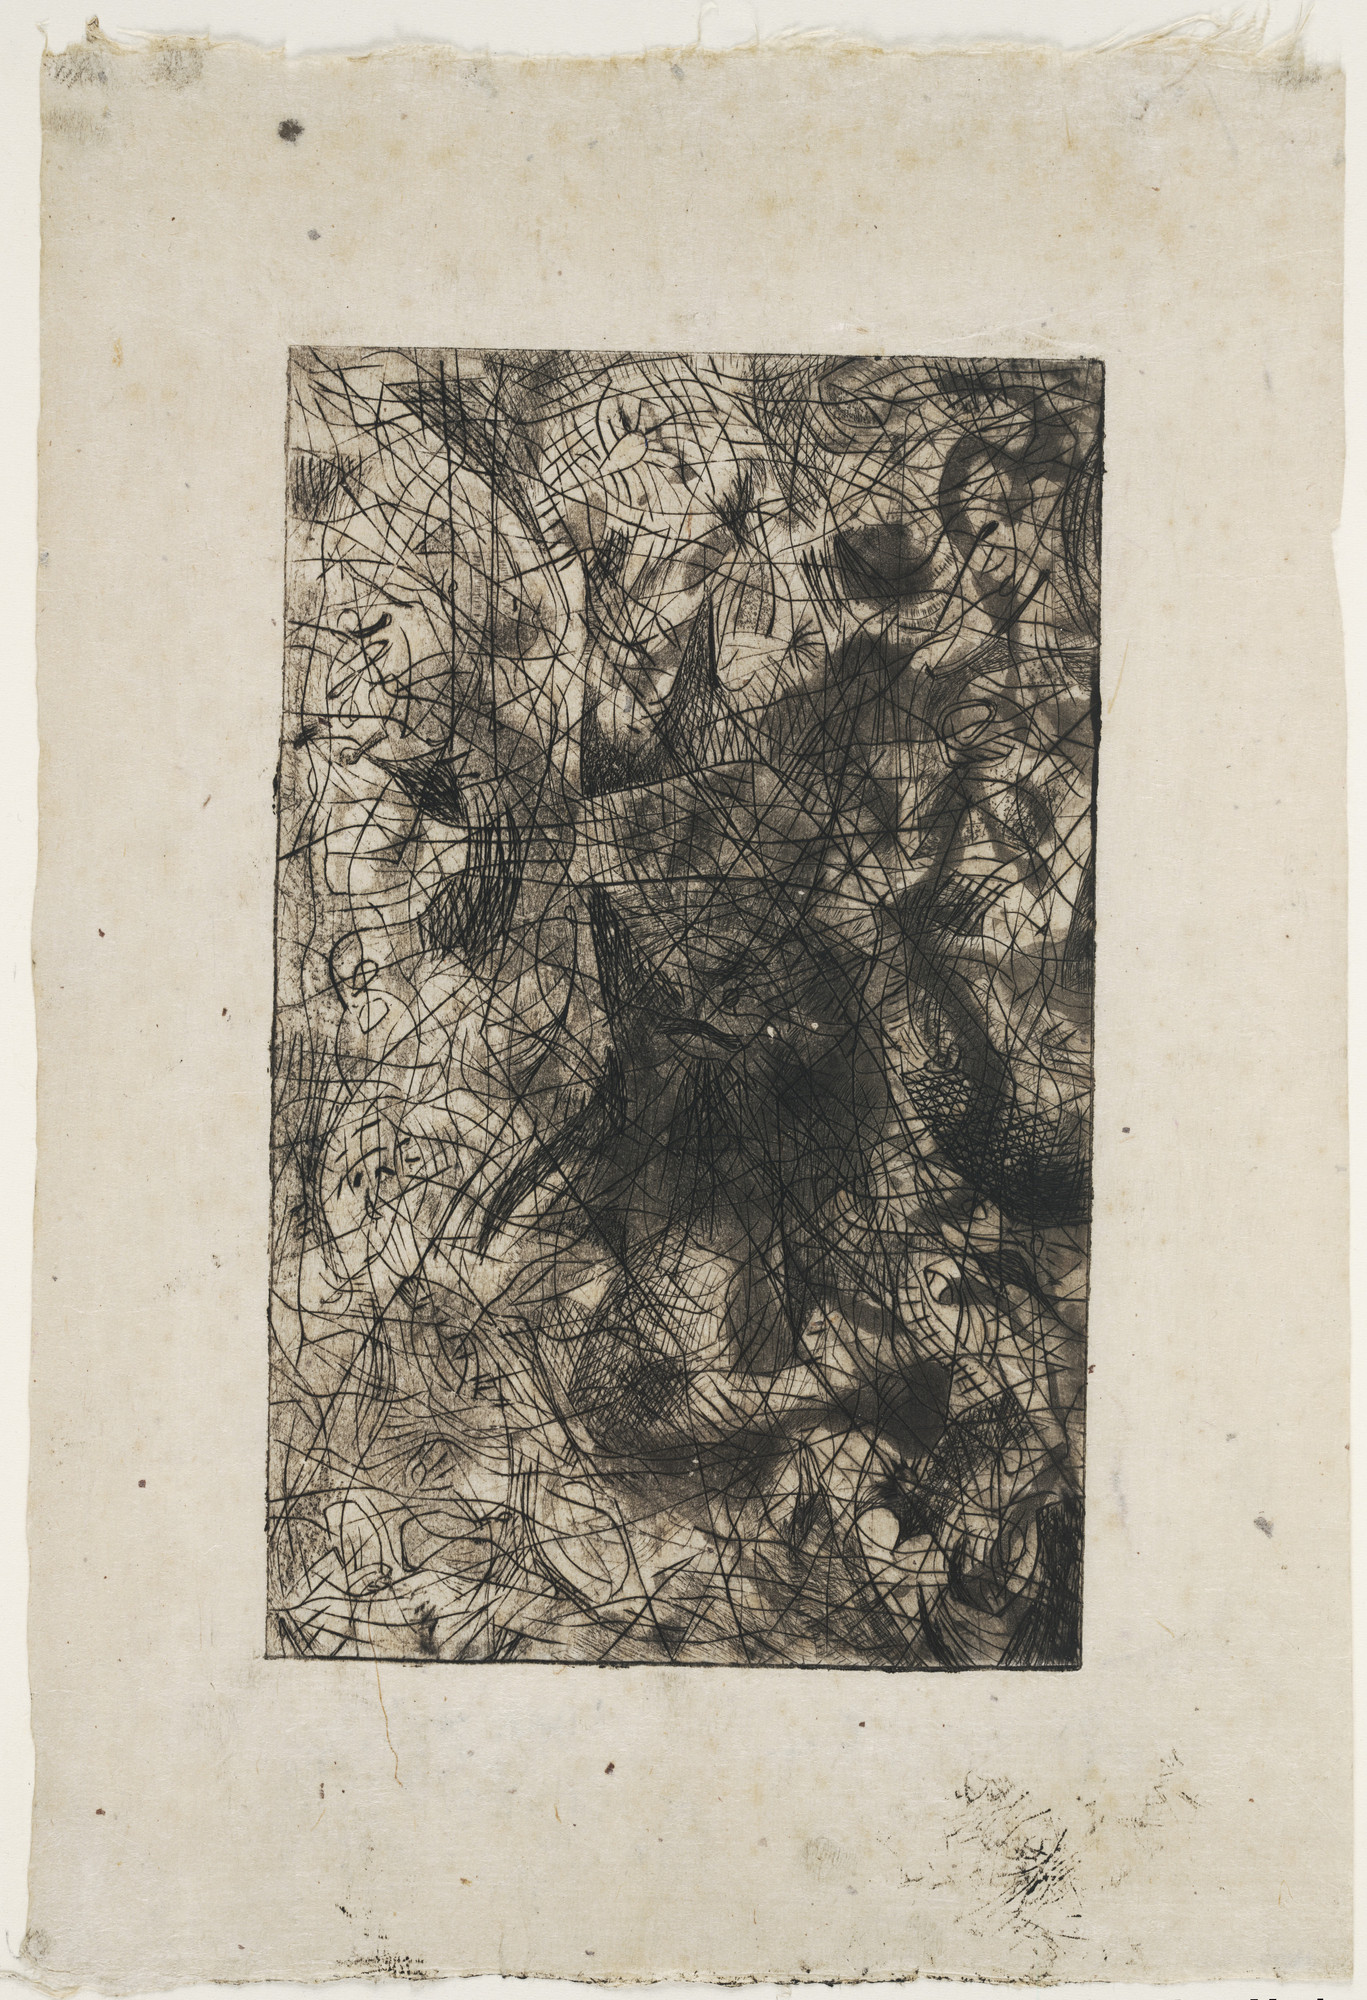 Jackson Pollock. Untitled (11), state II of II. c. 1944–45